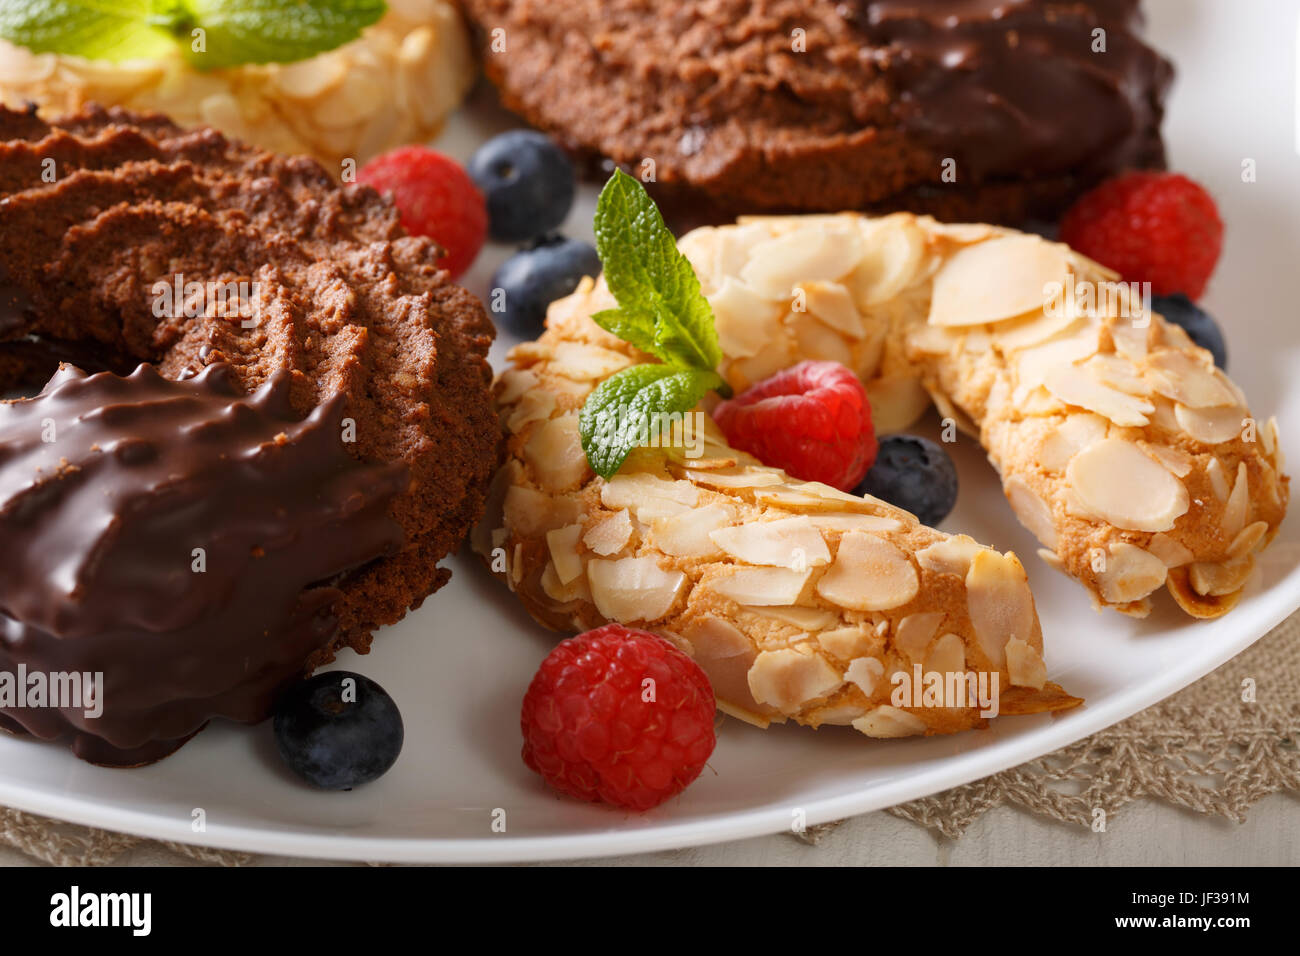 Beautiful Horseshoe Cakes With Chocolate And Almonds Close Up On A